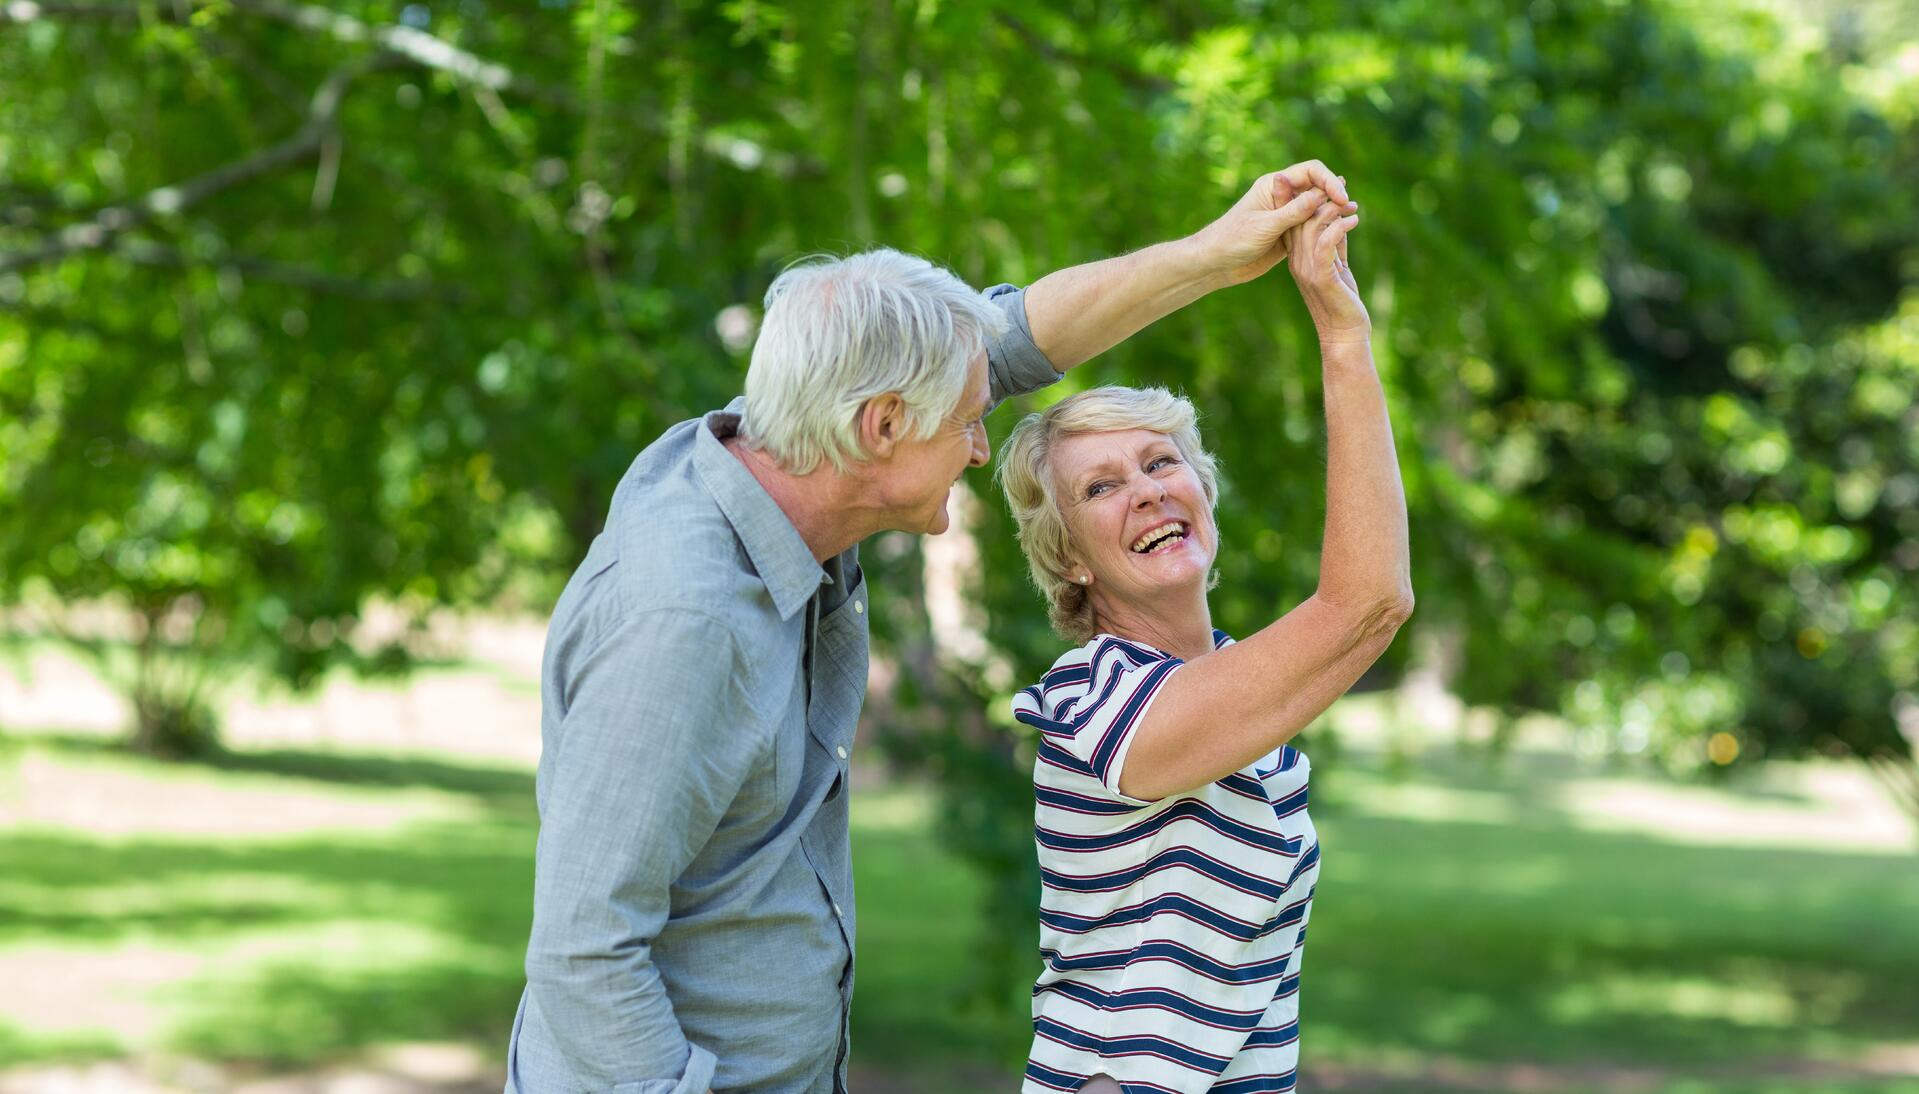 couple dancing outside_shutterstock_568713616